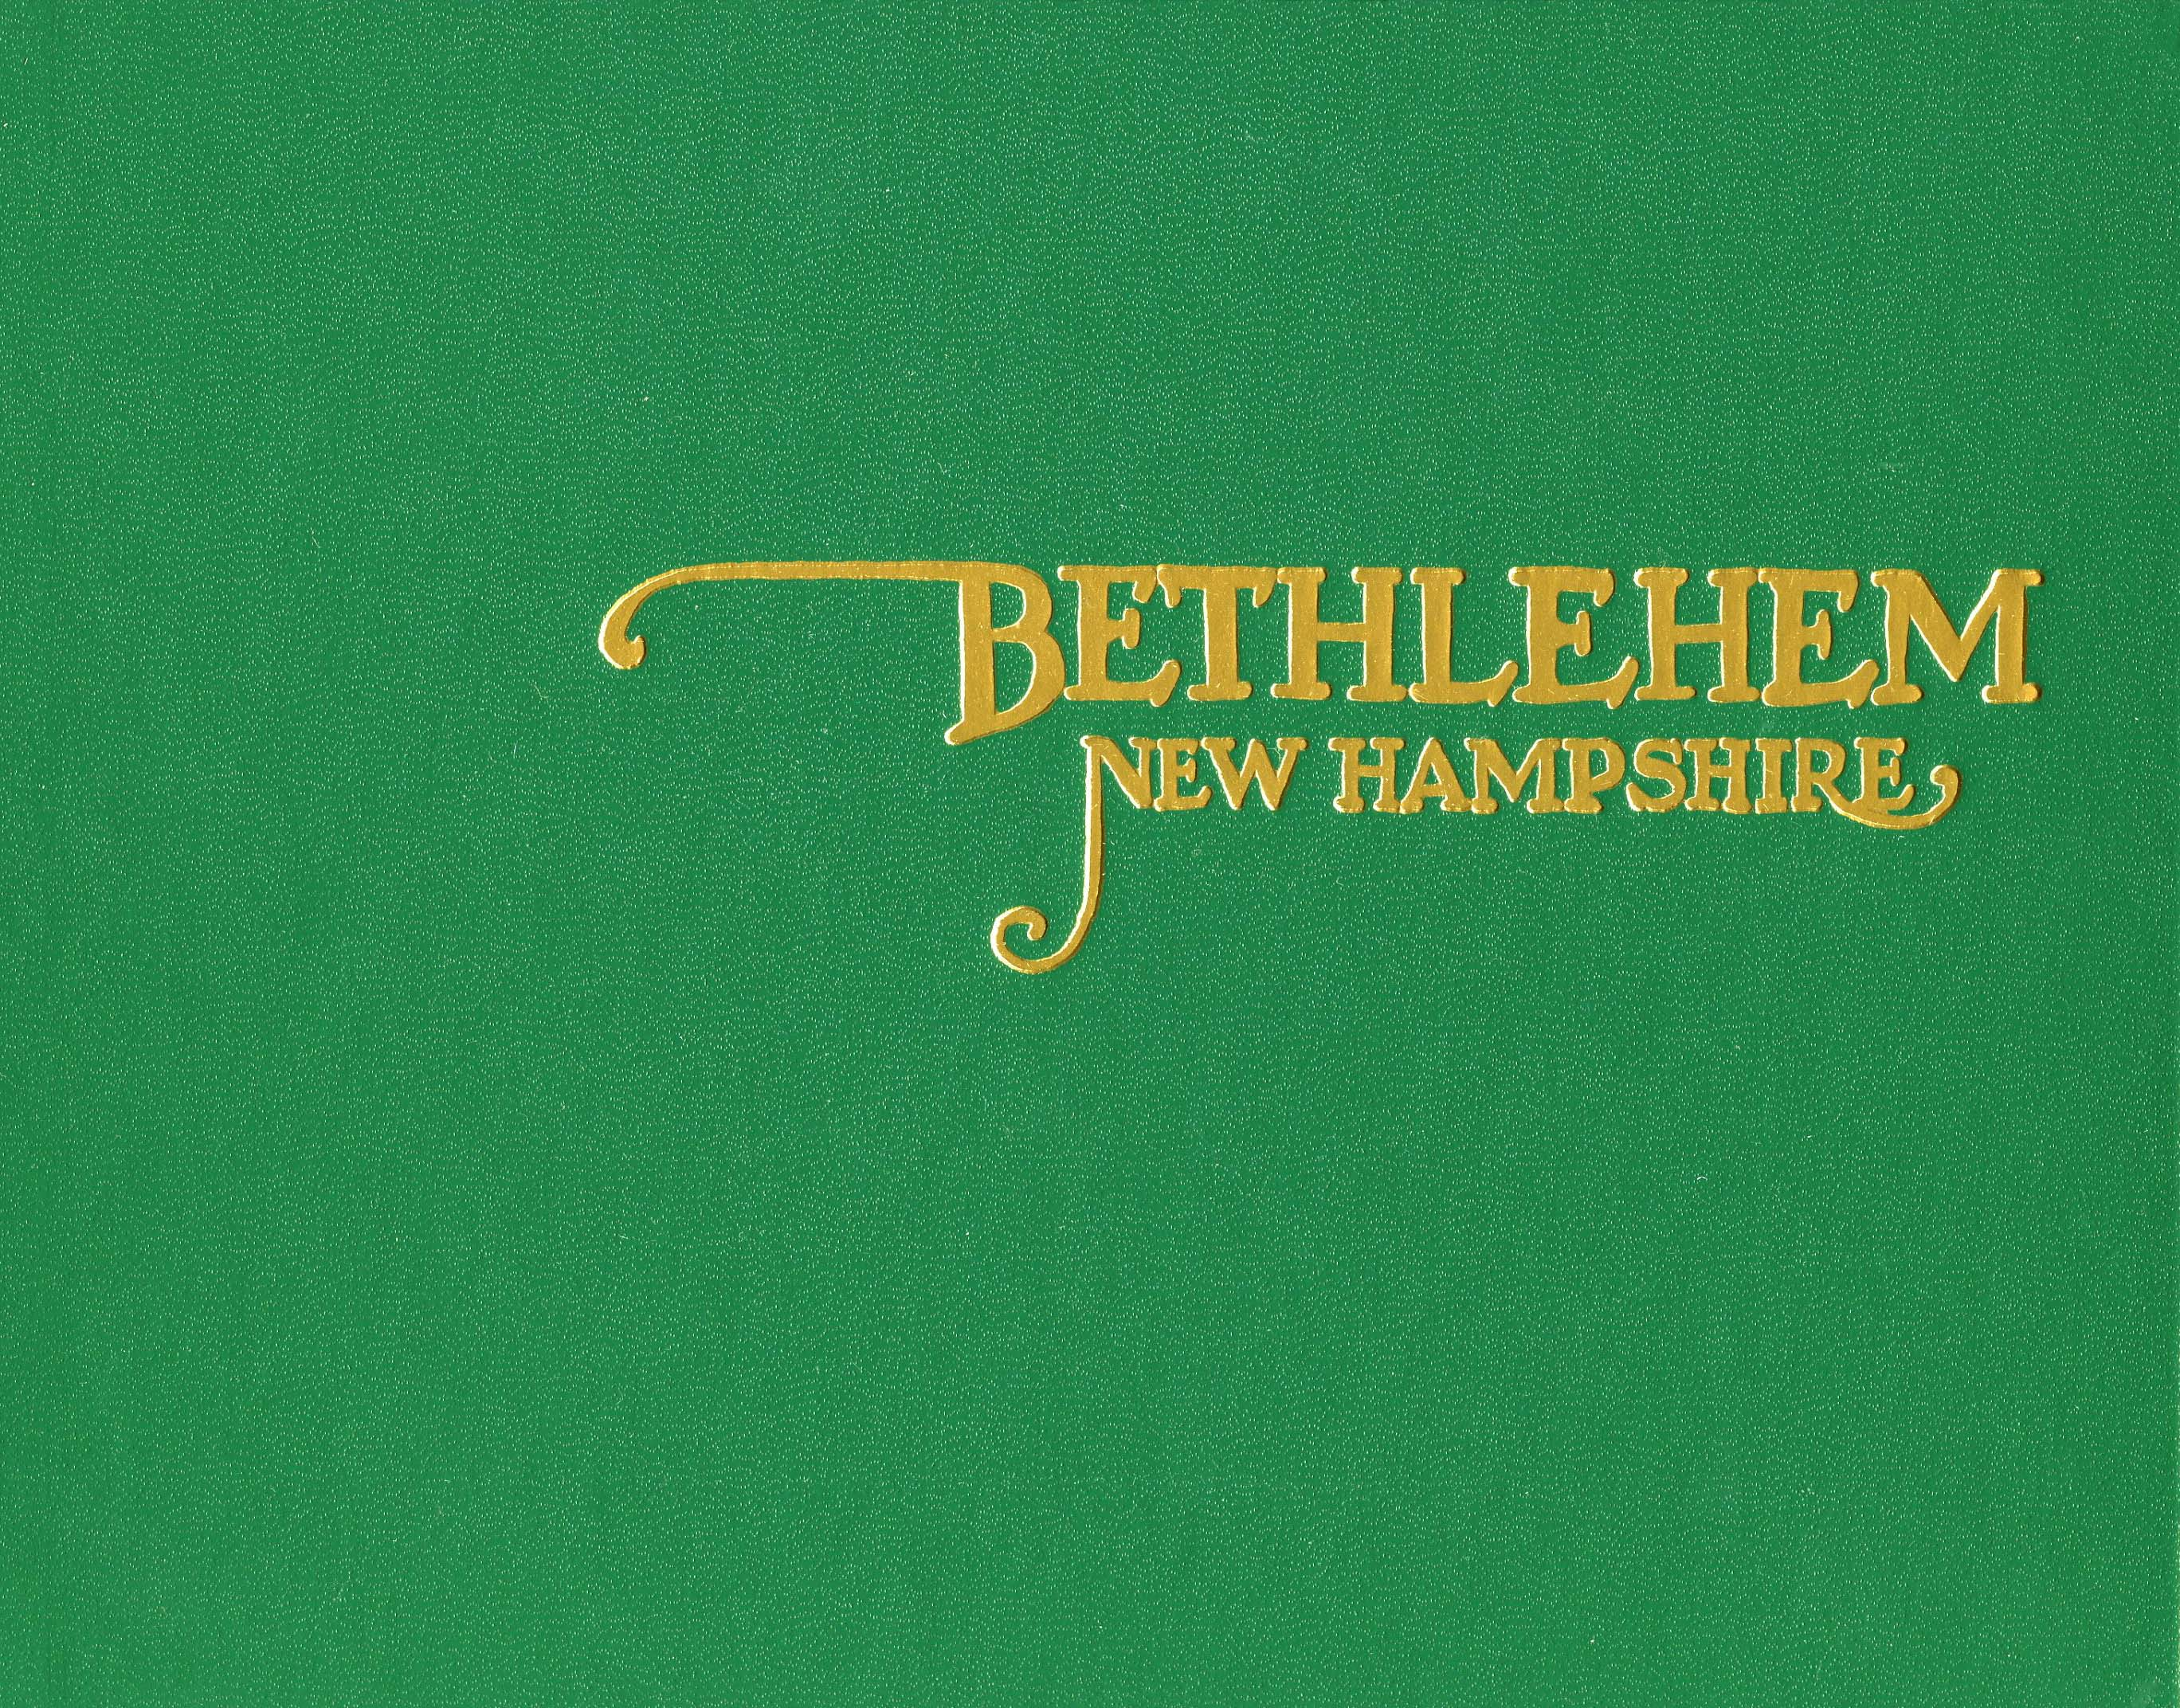 Bethlehem, New Hampshire